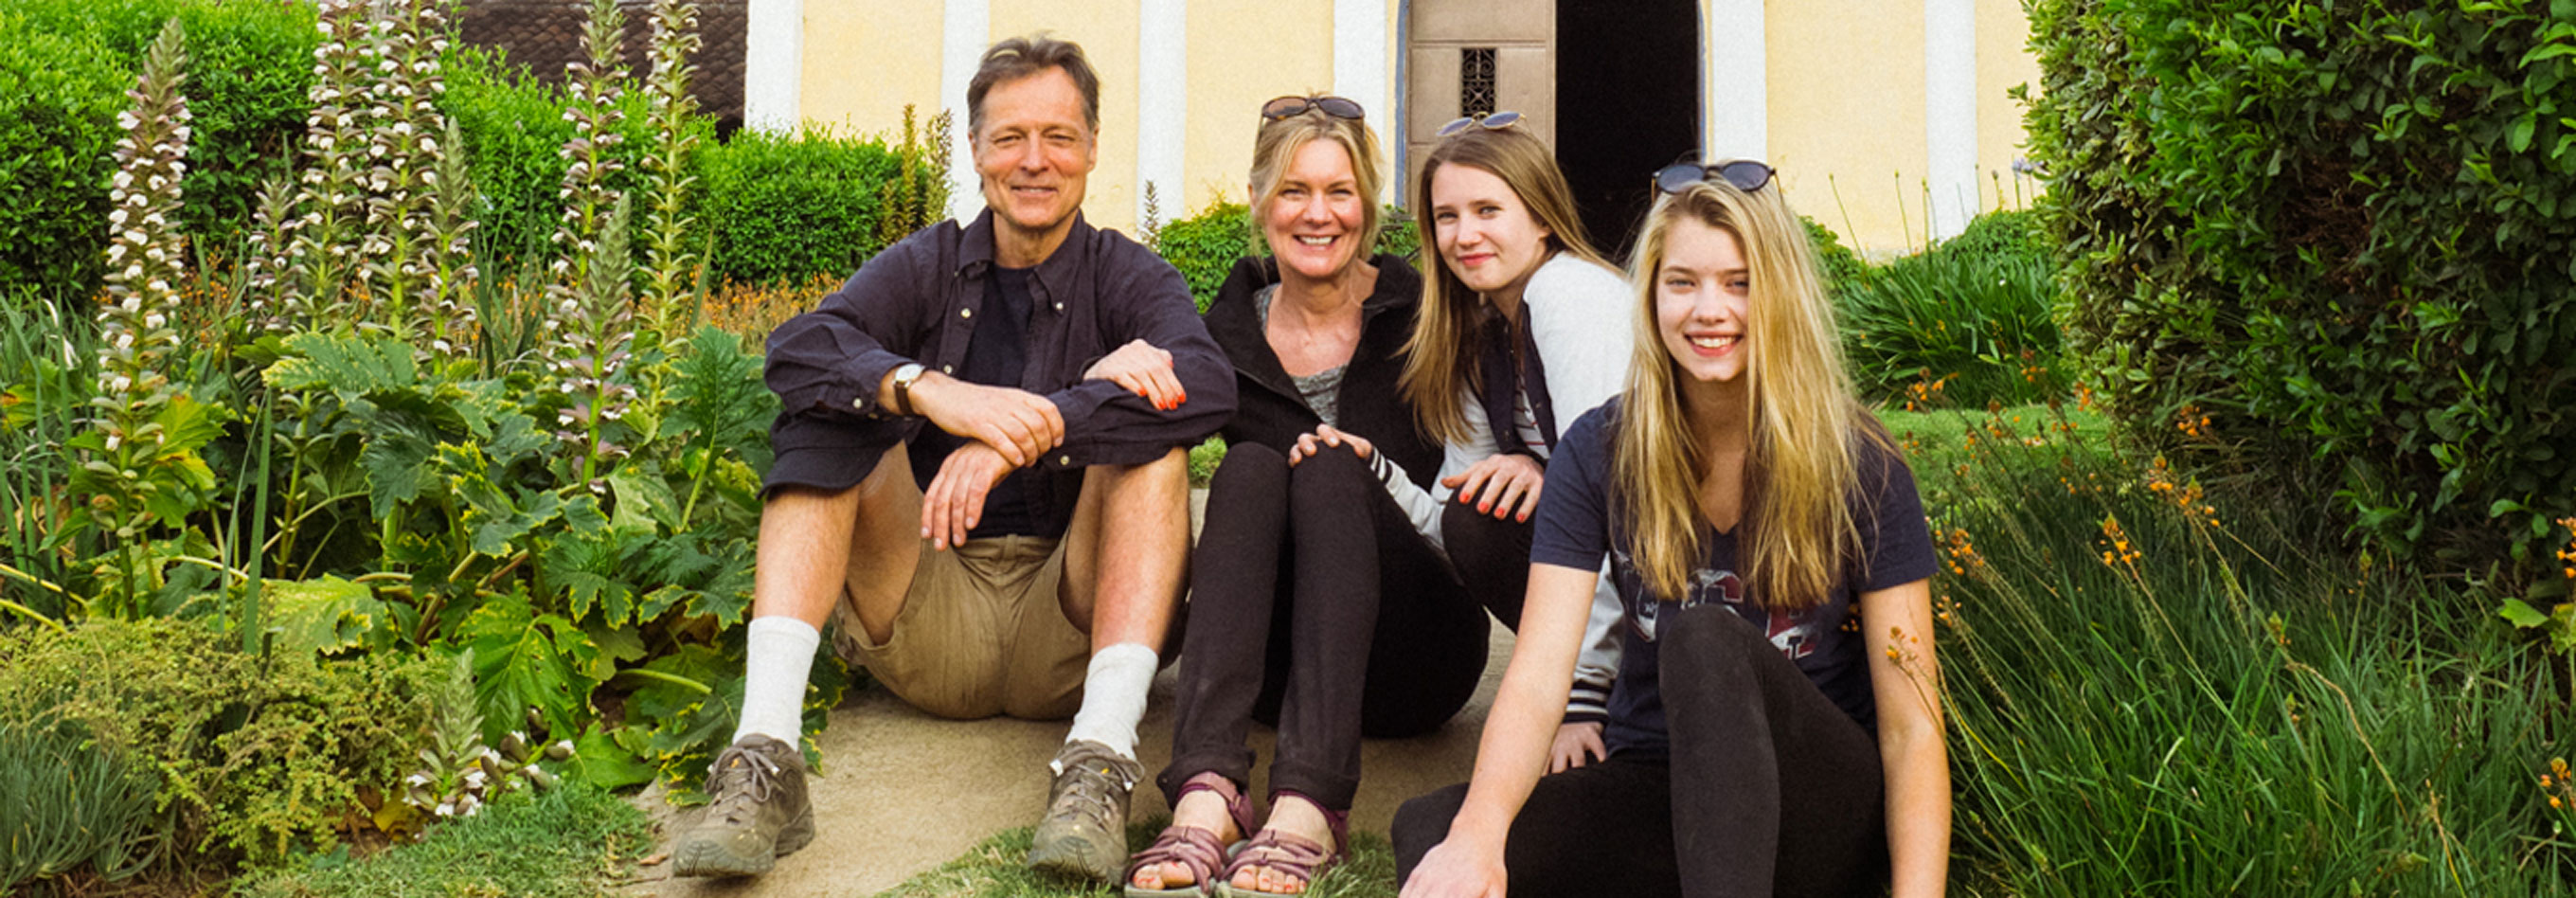 Family Volunteer Abroad Opportunities - Safest Programs, Lowest Fees